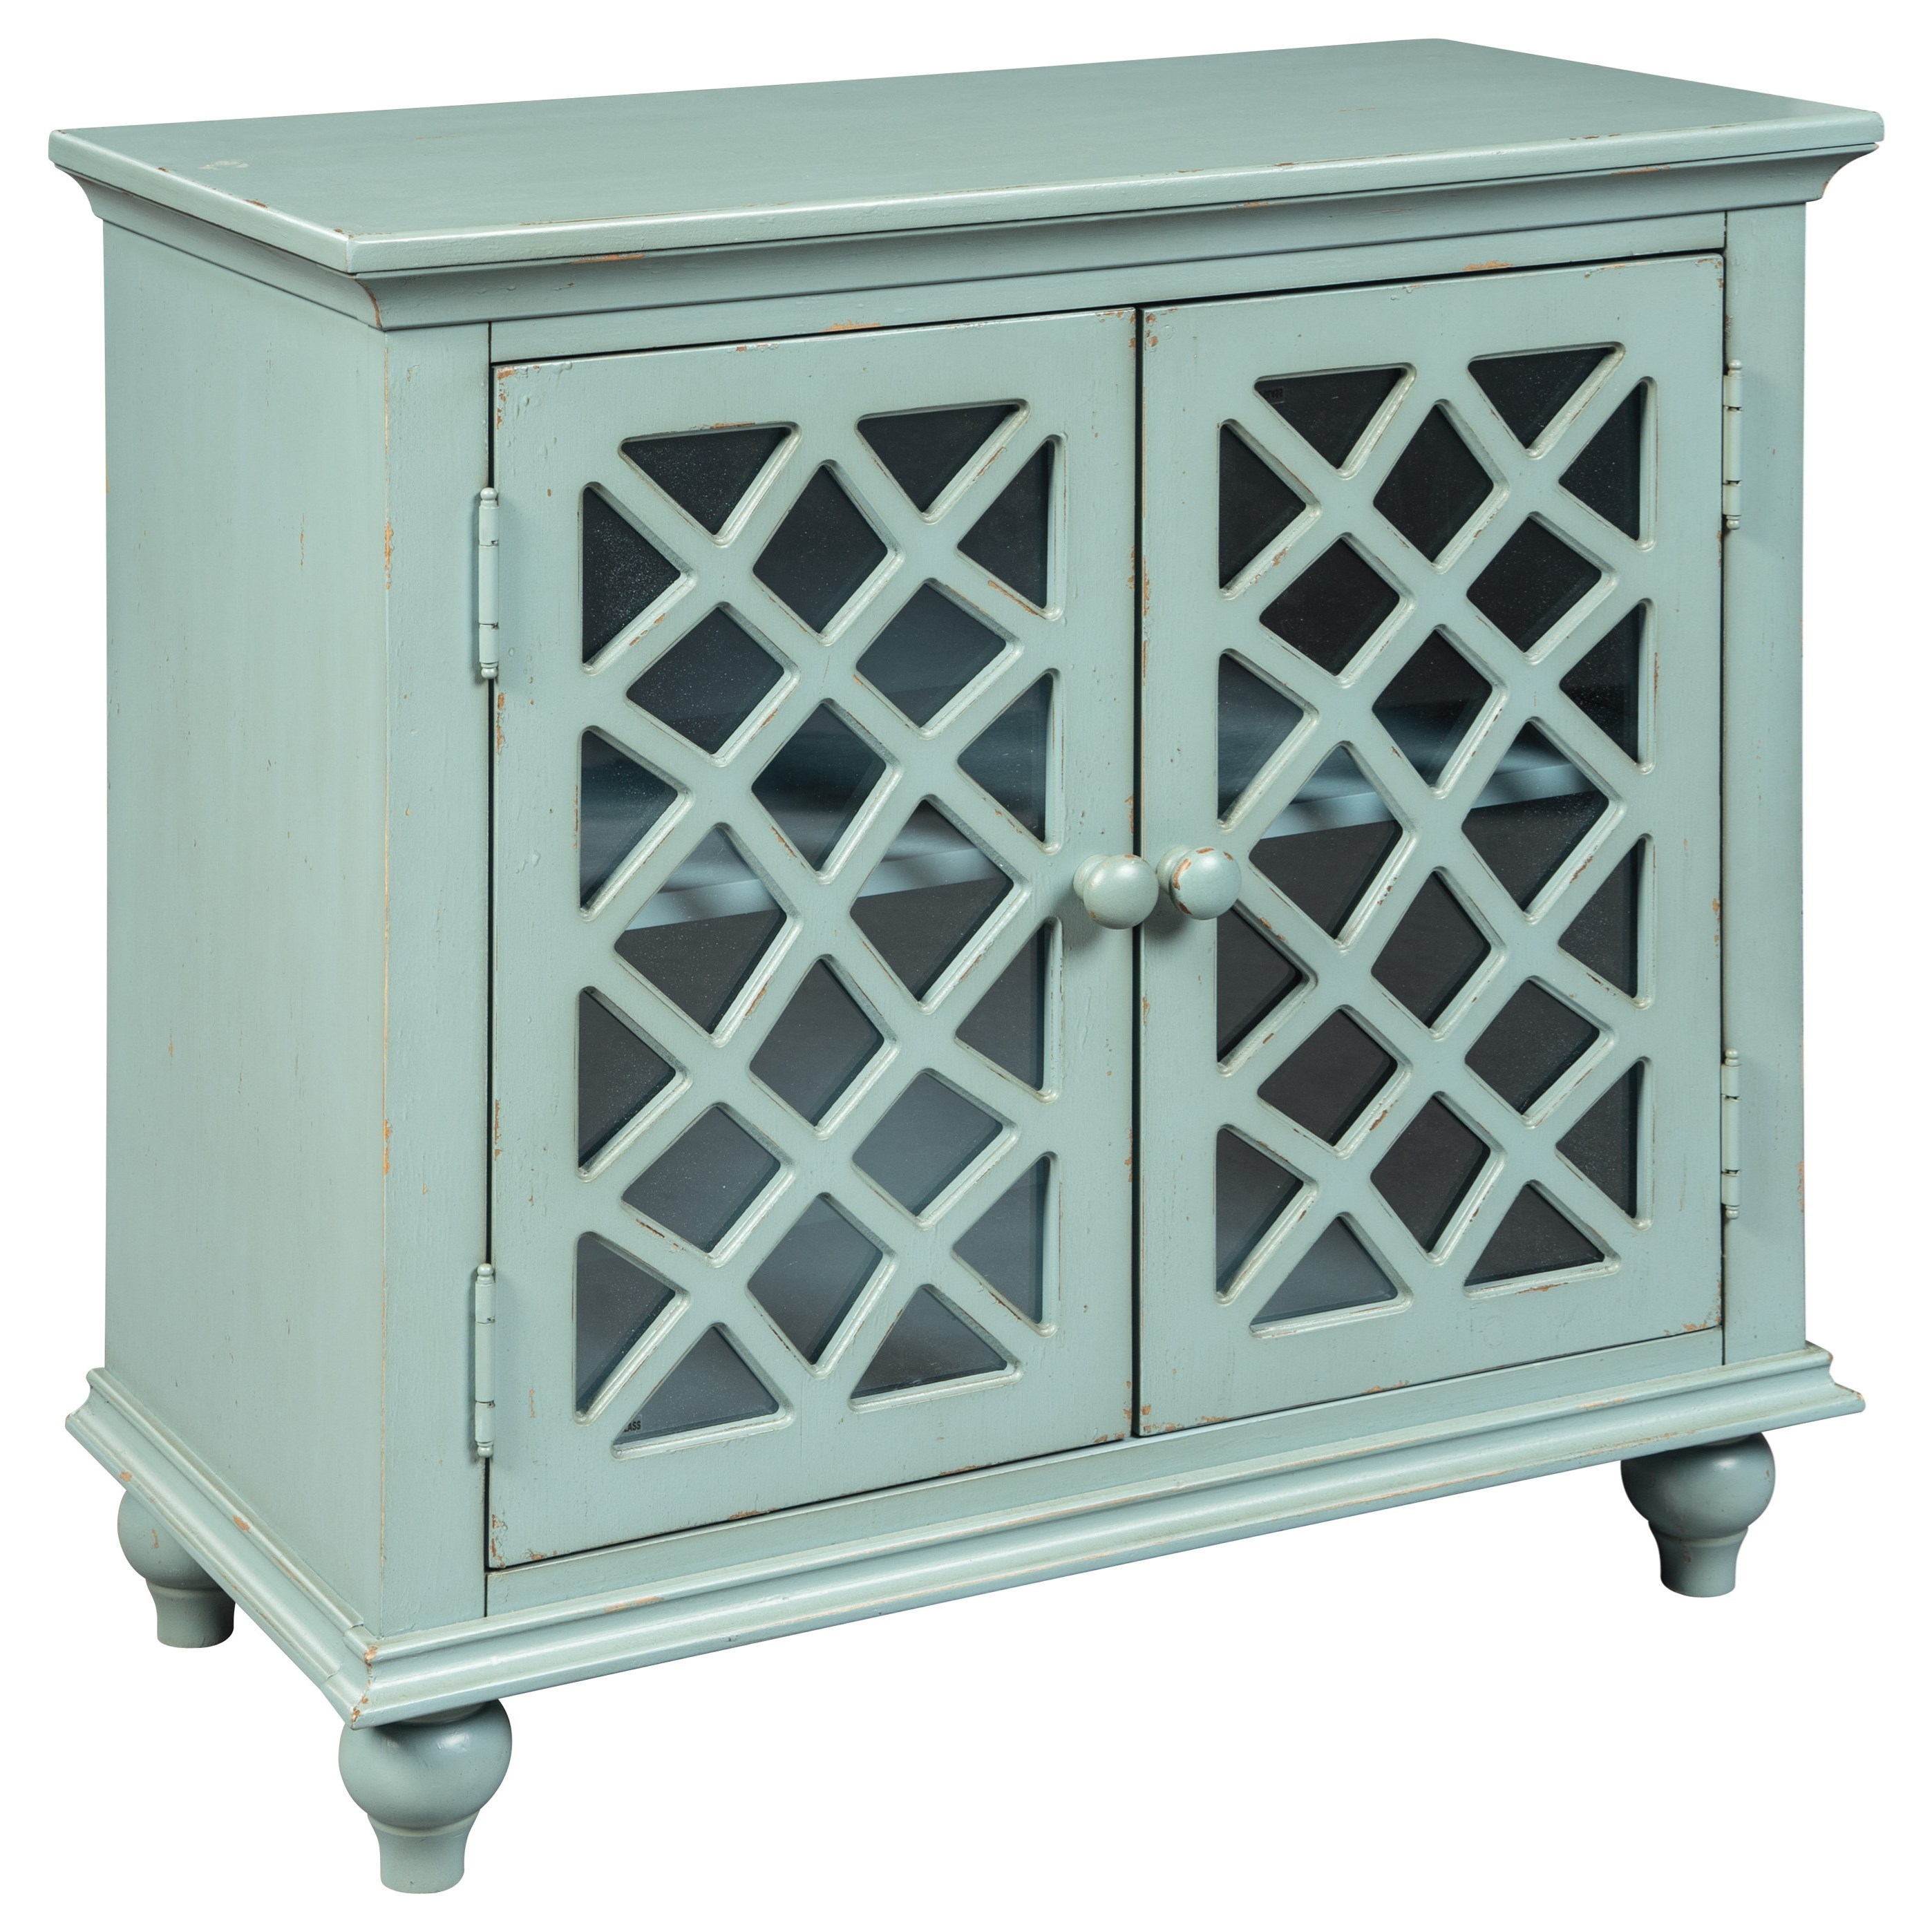 commercial office furniture probably terrific best vintage end relaxed accent cabinet signature design ashley wolf products color mirimyn table grey wash wood stain small modern